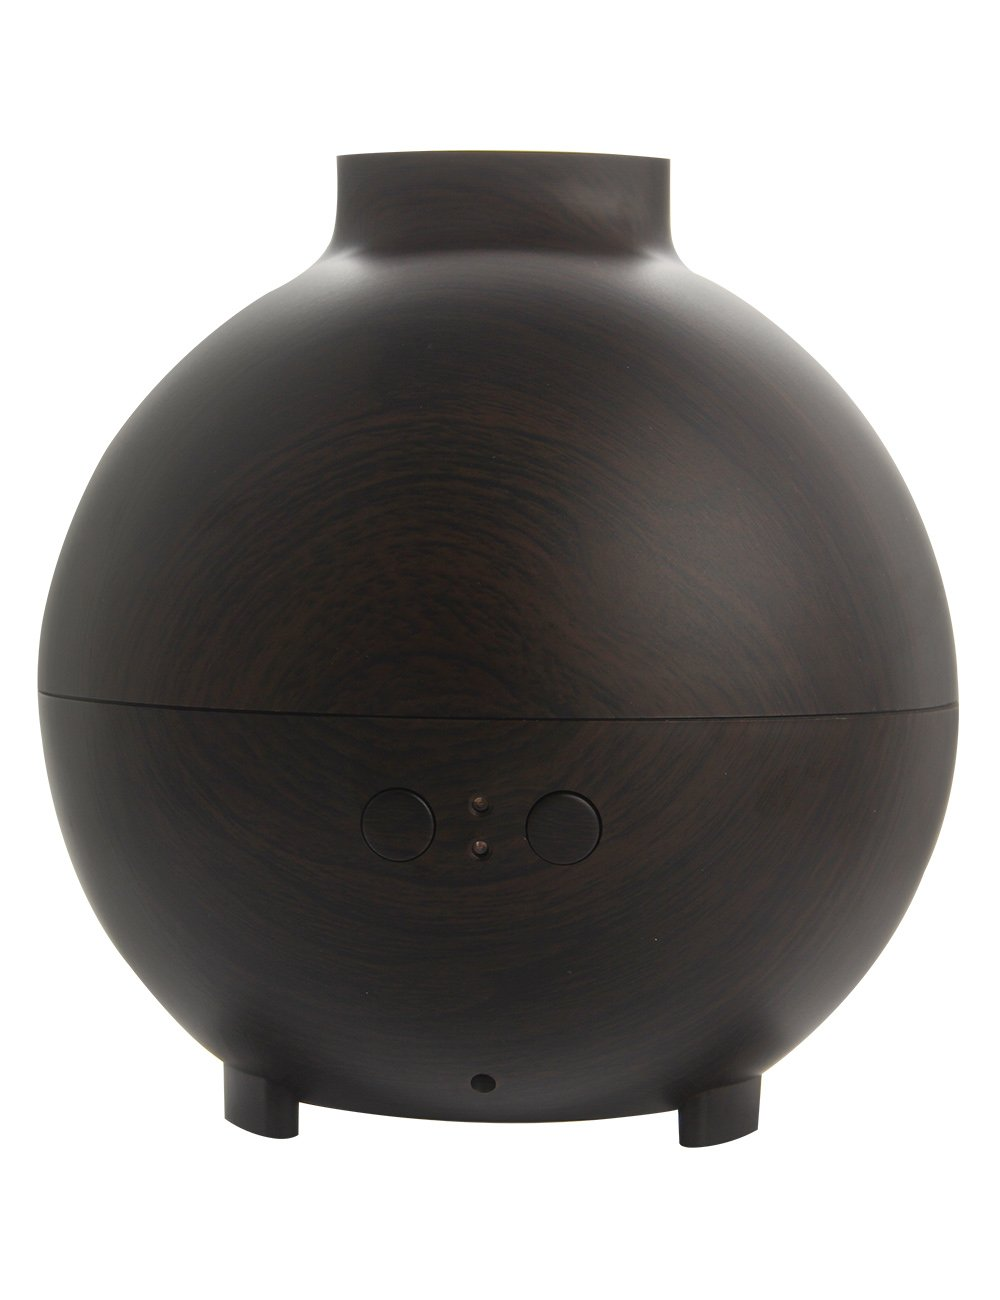 Essential Oil Diffuser 600ml Large by LIANPENG,Ultrasonic Aromatheropy Diffuser With Waterless Auto Shut-off,Unique Aroma Humidifier Super Quiet,for Home Office Yoga Spa,Perfect Gift,Dark Wood Grain